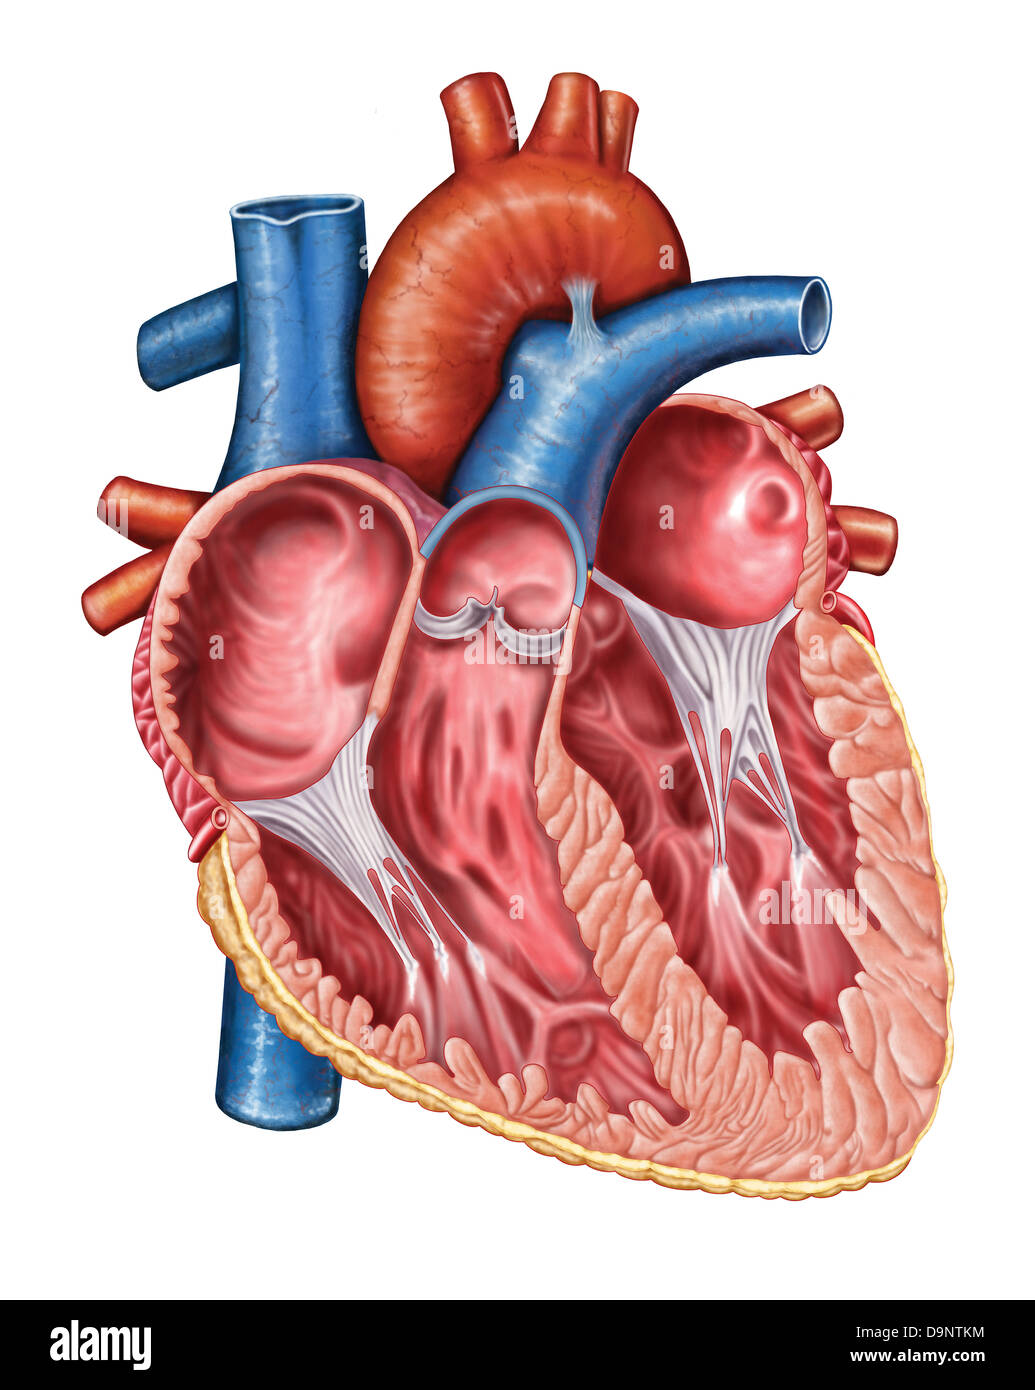 Human Heart Dissection Stock Photos Human Heart Dissection Stock